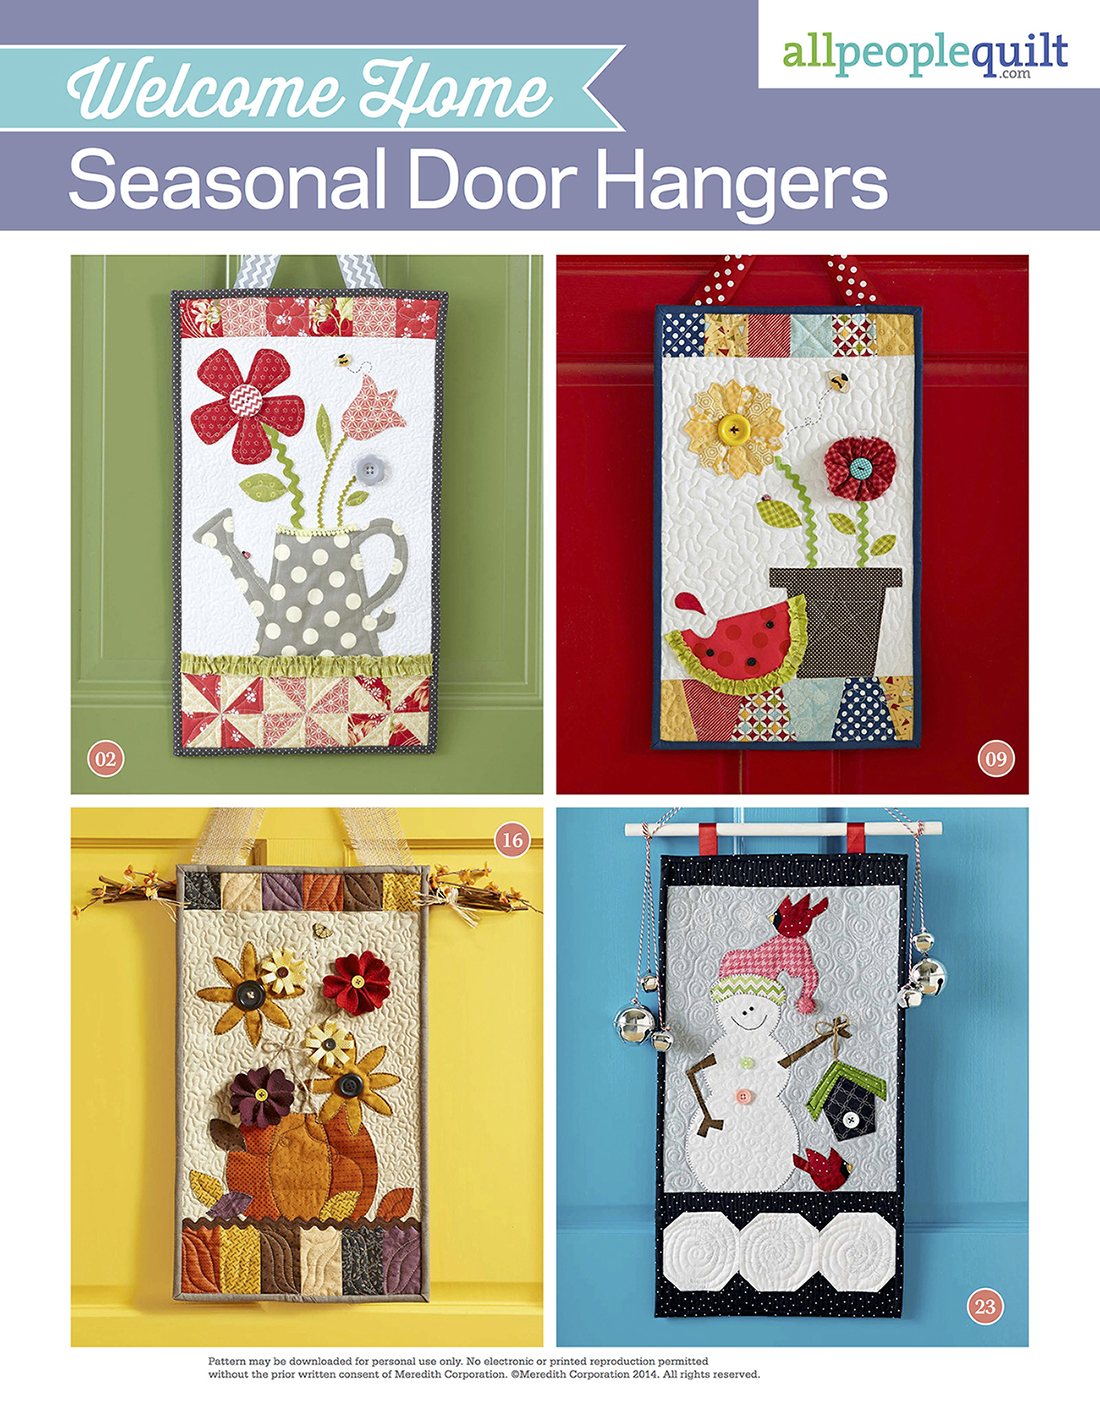 Welcome Home Seasonal Door Hangers